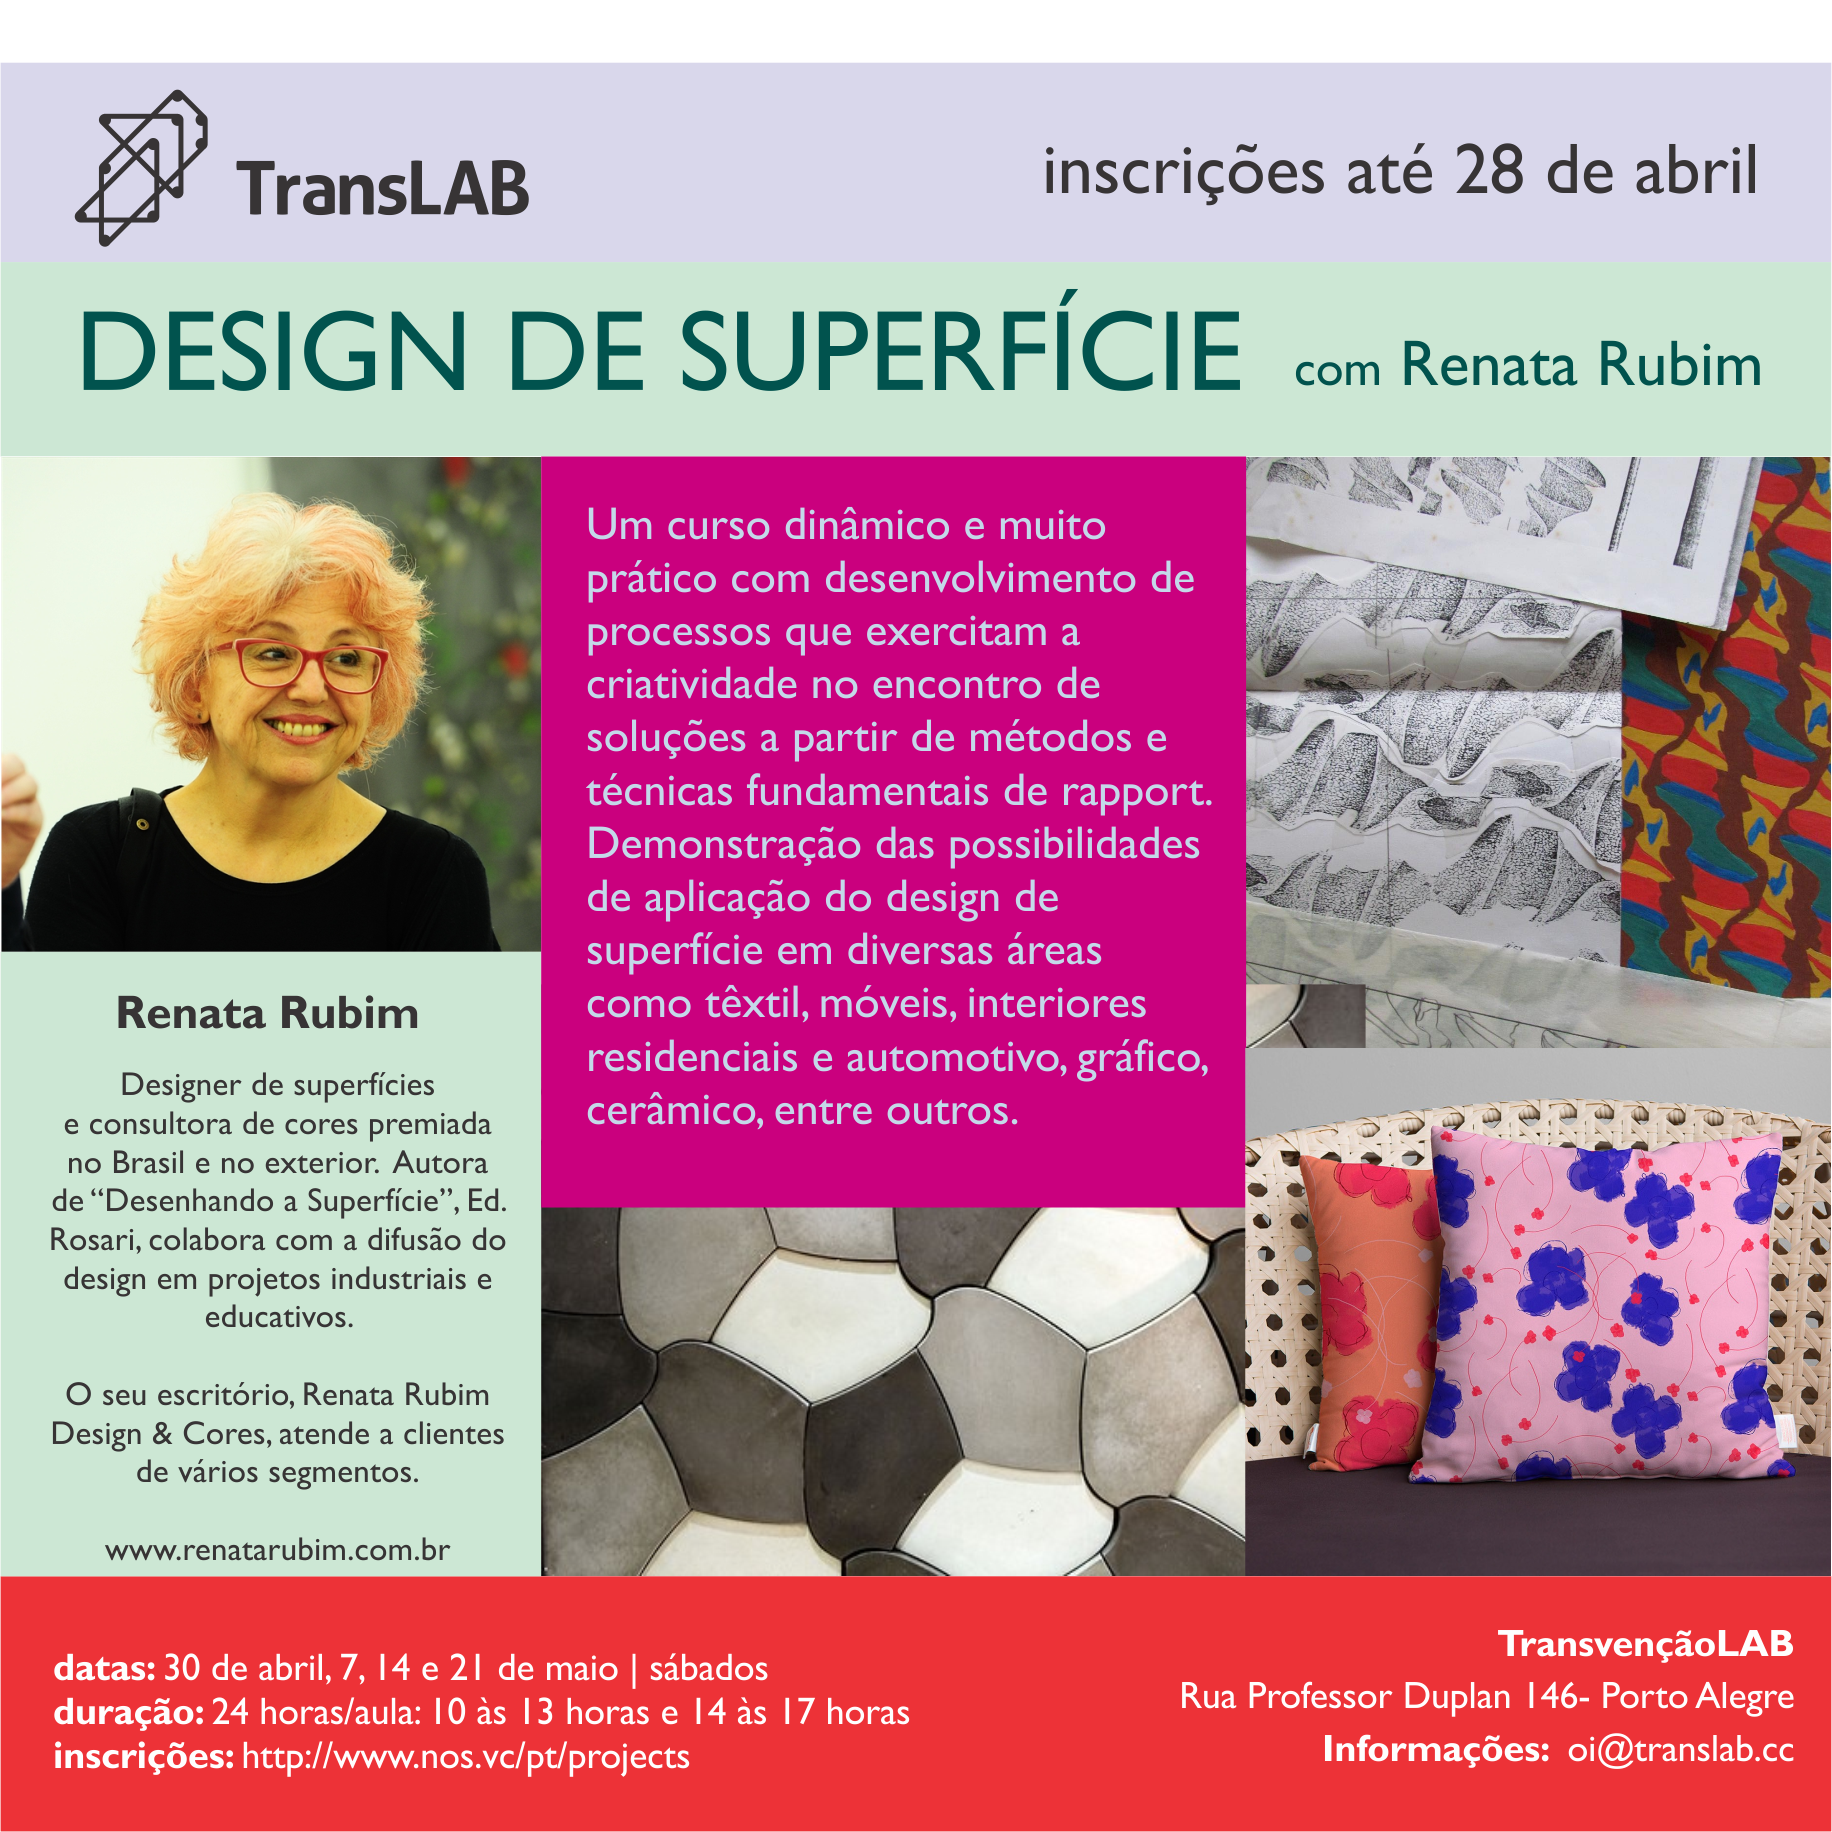 Workshop Design de Superfície | TransLAB